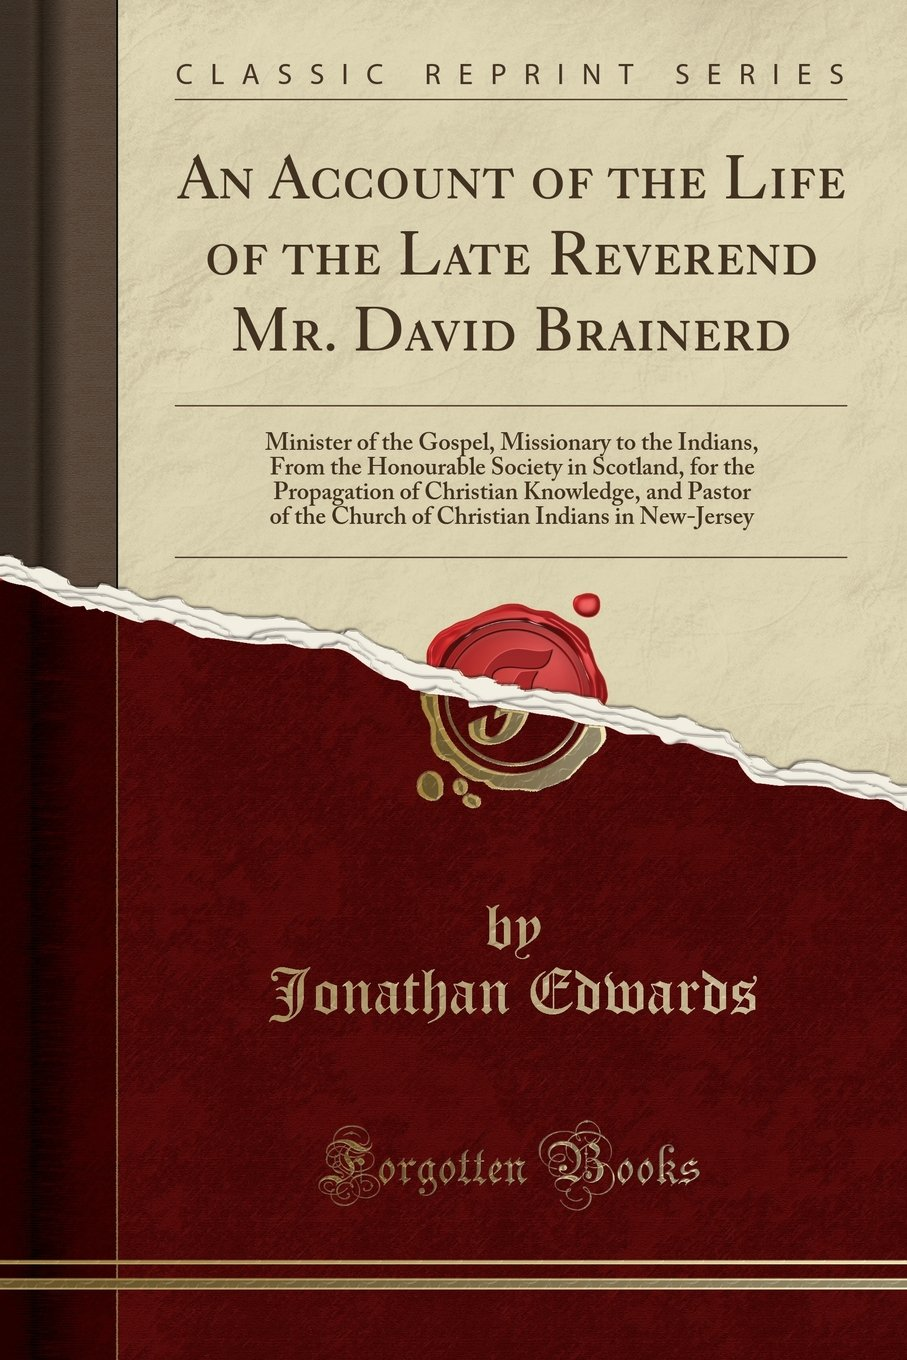 An Account of the Life of the Late Reverend Mr. David Brainerd: Minister of the Gospel, Missionary to the Indians, From the Honourable Society in ... of the Church of Christian Indians in New-Je pdf epub